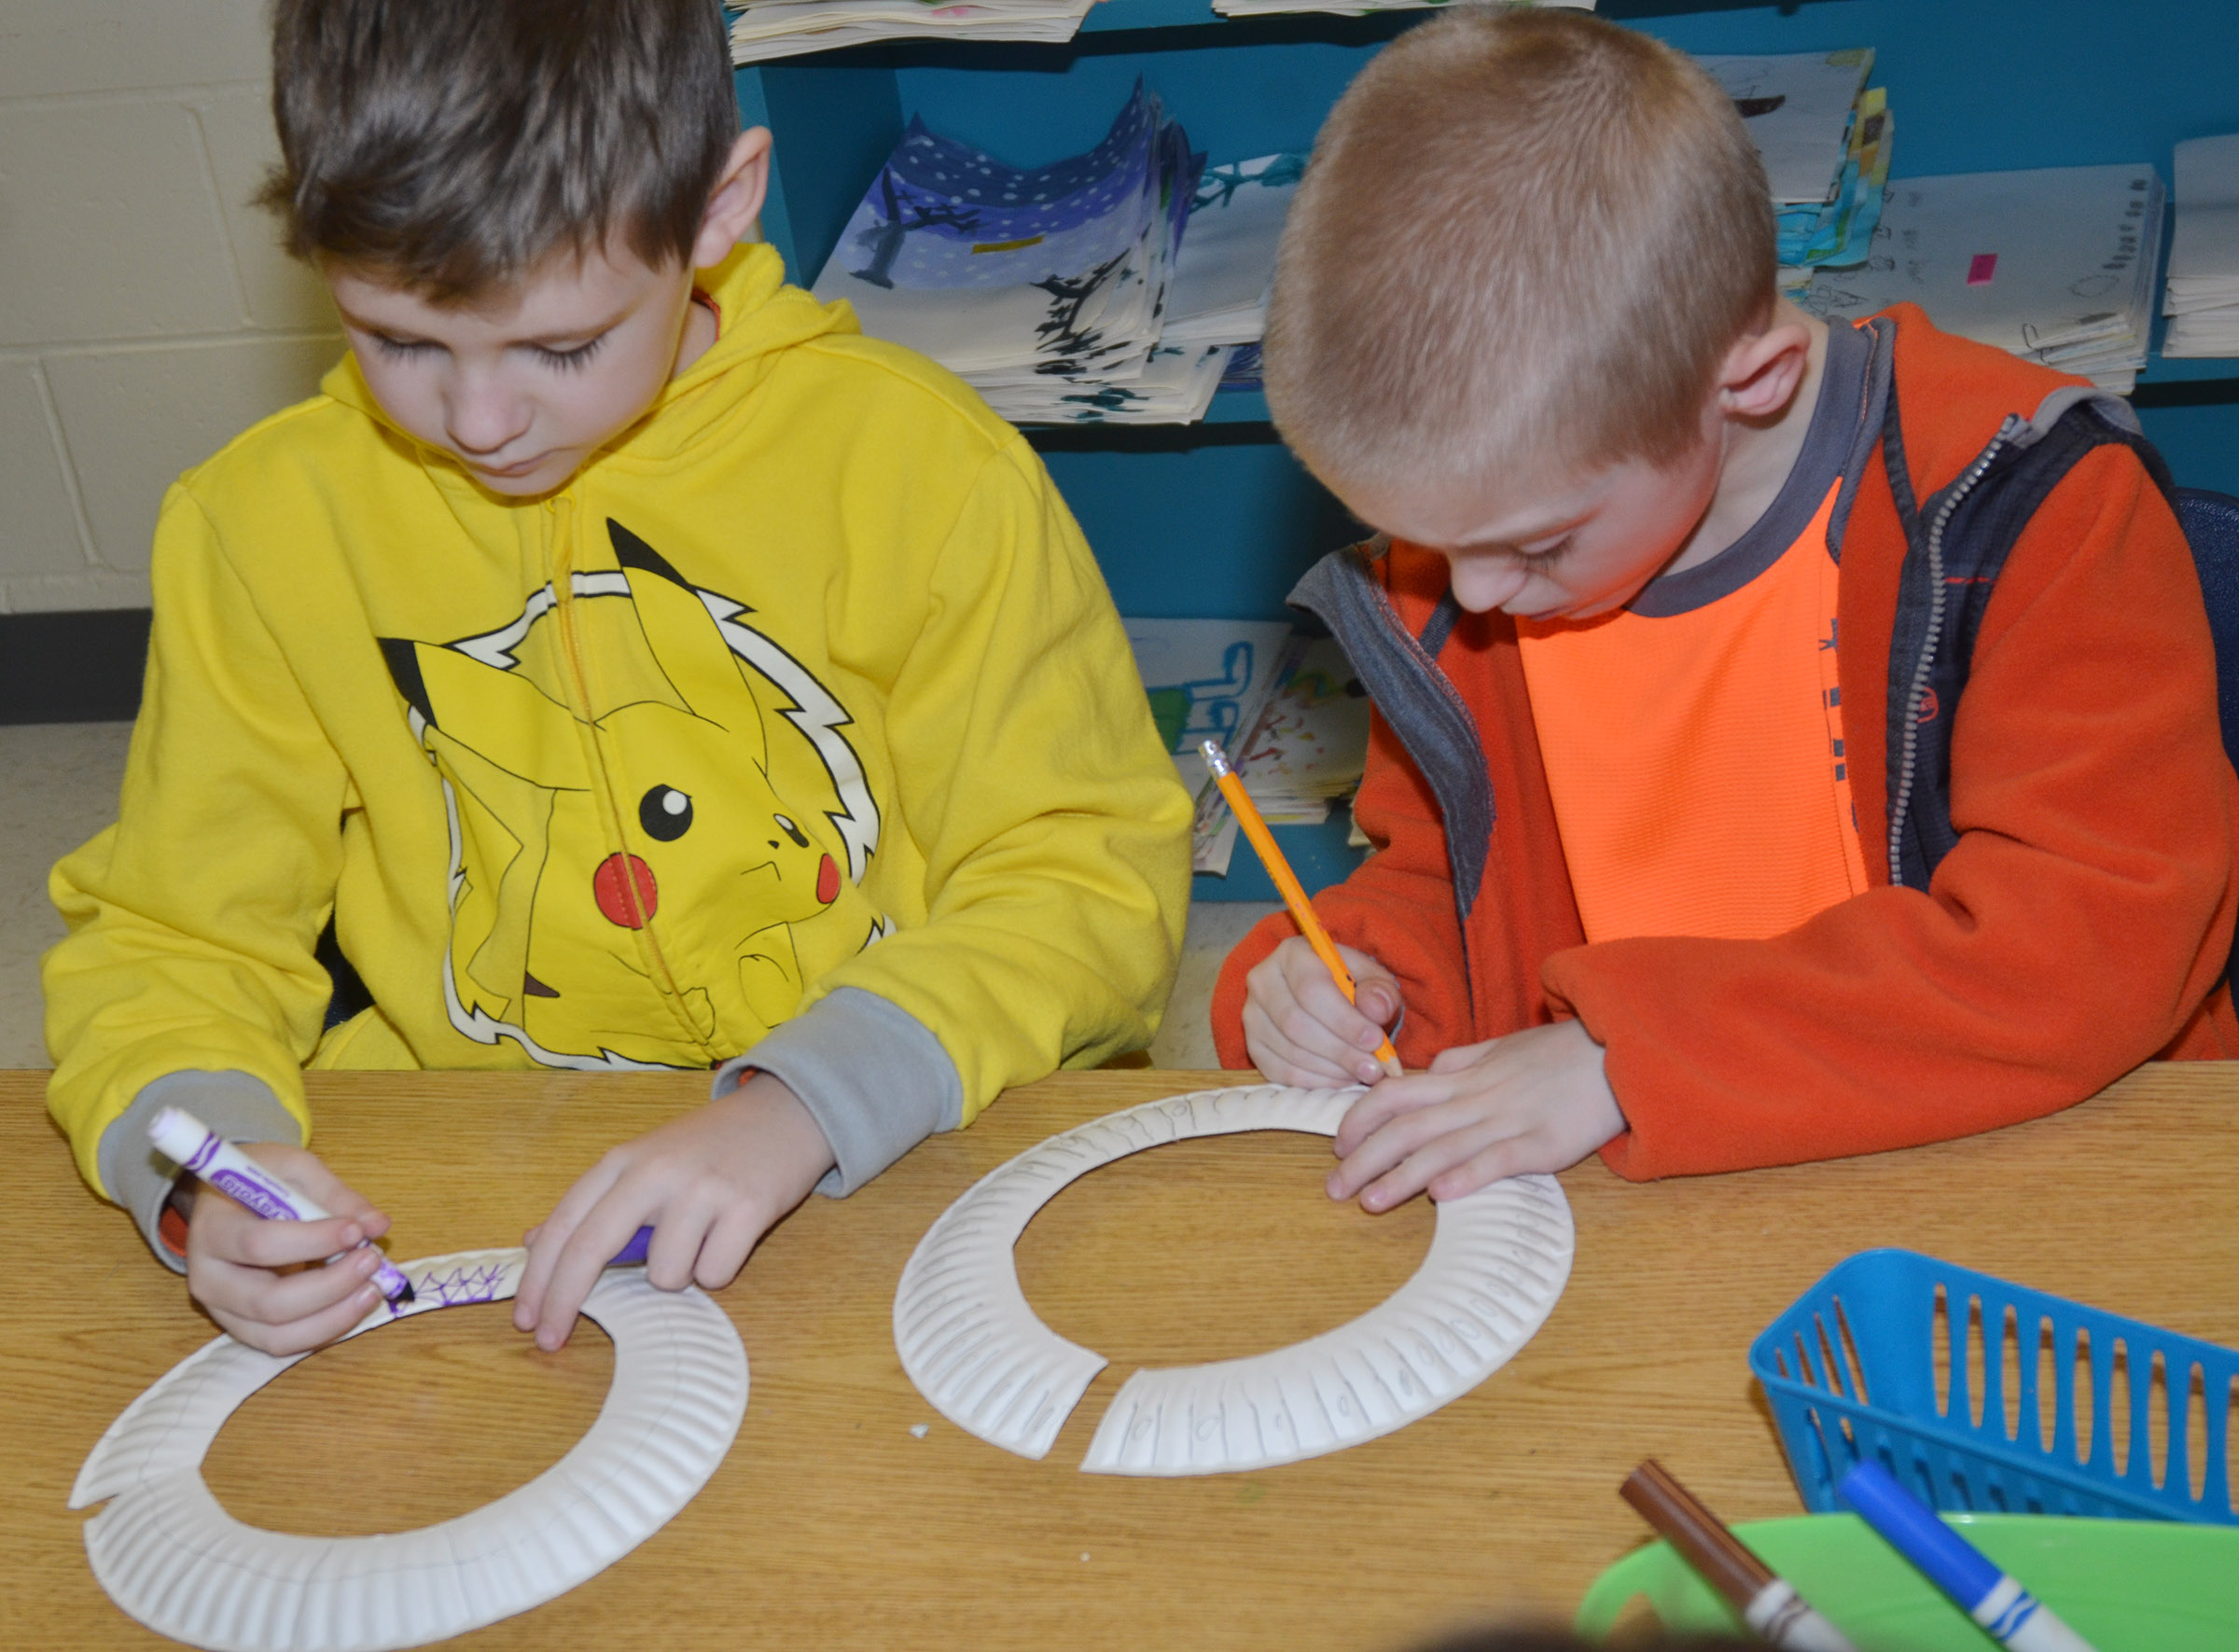 CES second-graders Ryan Tungate, at left, and Evan Cundiff draw designs on their African necklaces.